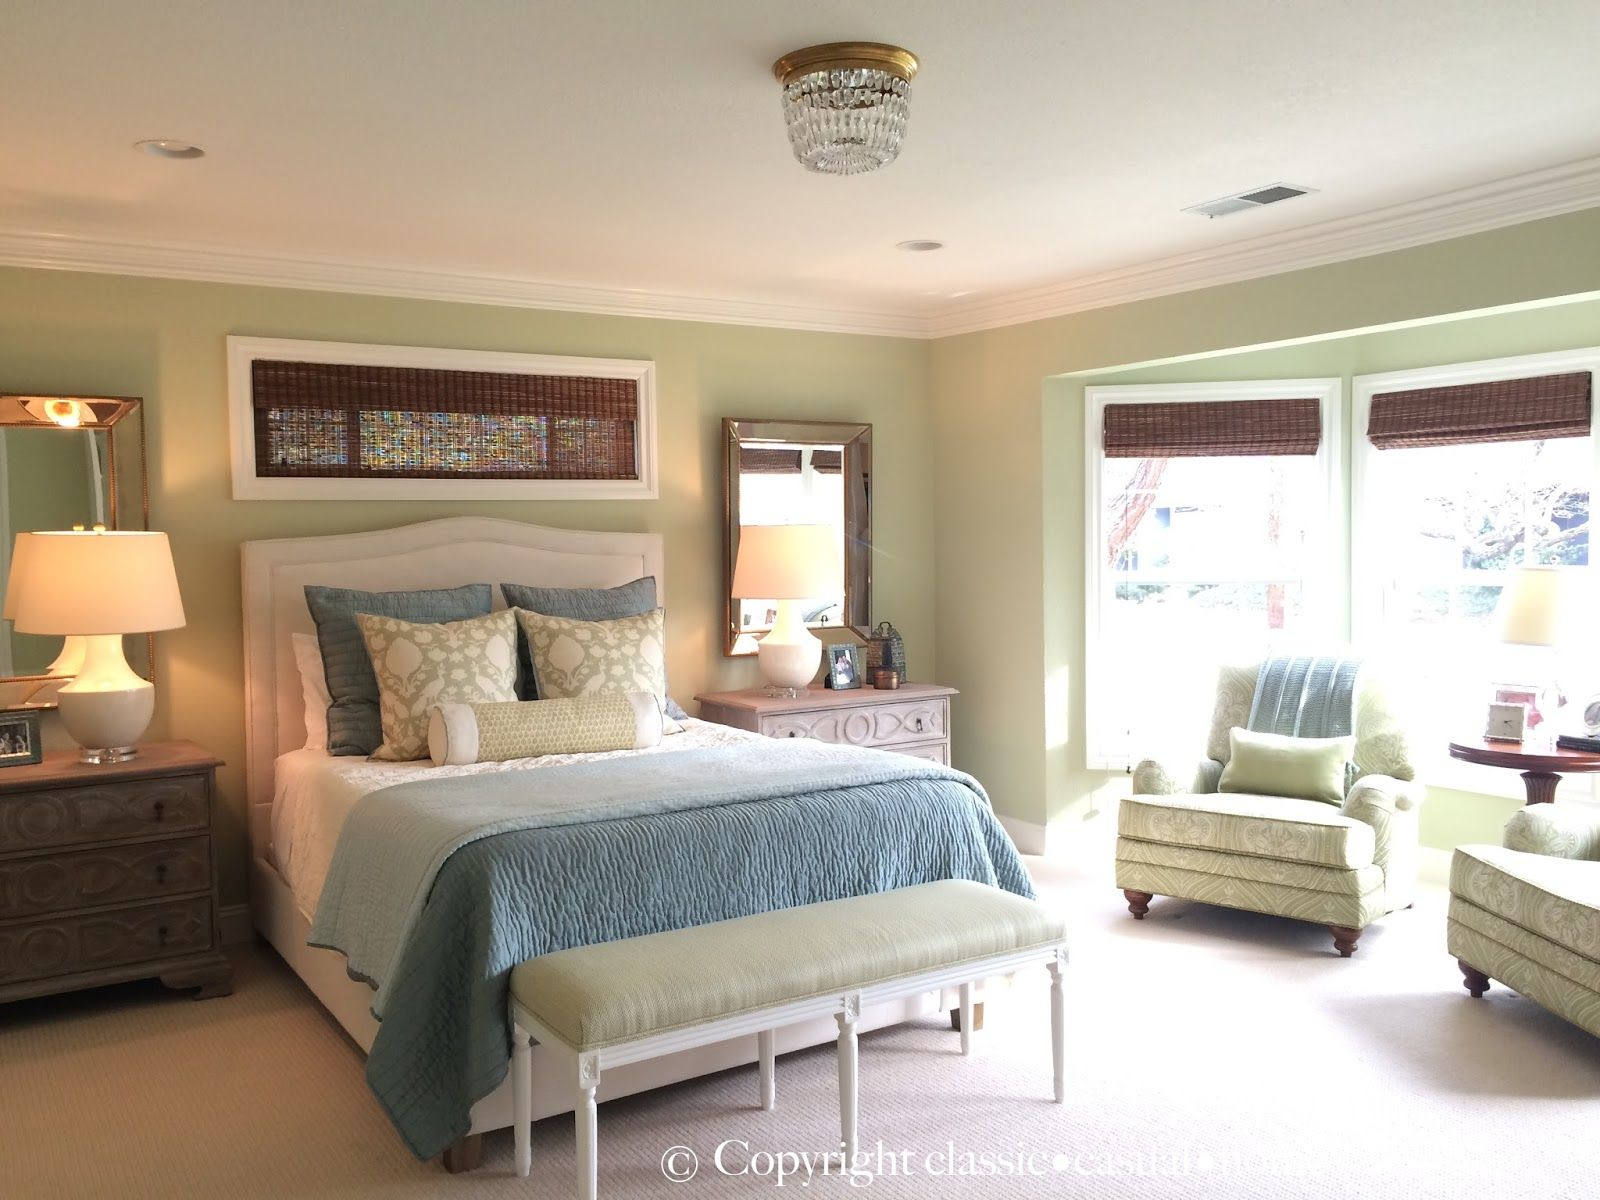 Hollingsworth Green Benjamin Moore Paint Colors Pinterest Blue Master Bedroom Master